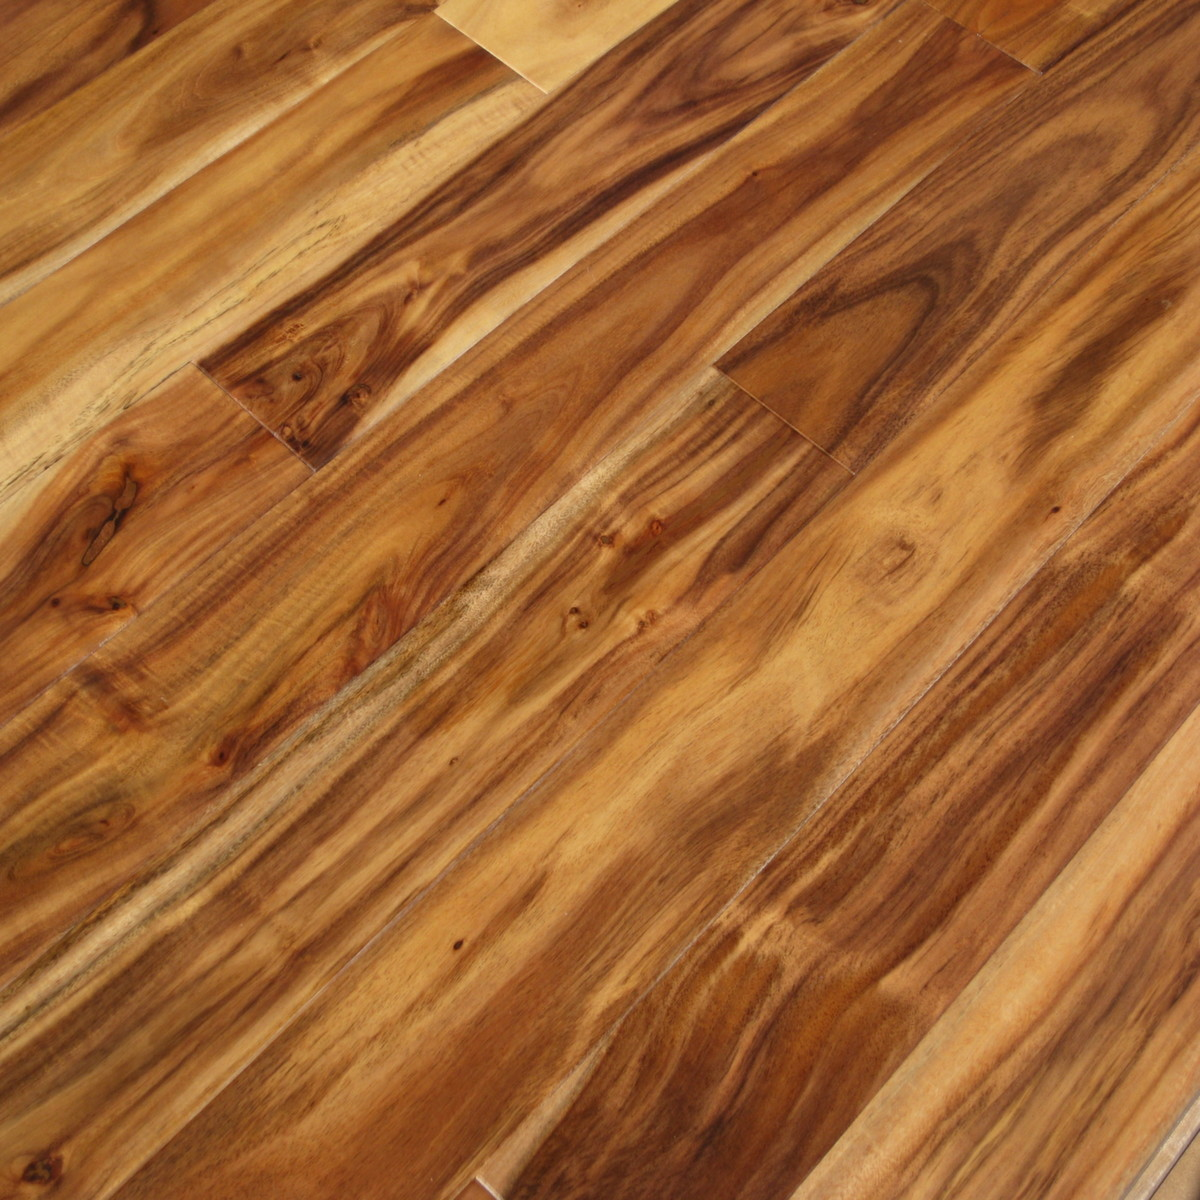 Acacia natural hand scraped hardwood flooring unique for Natural floors